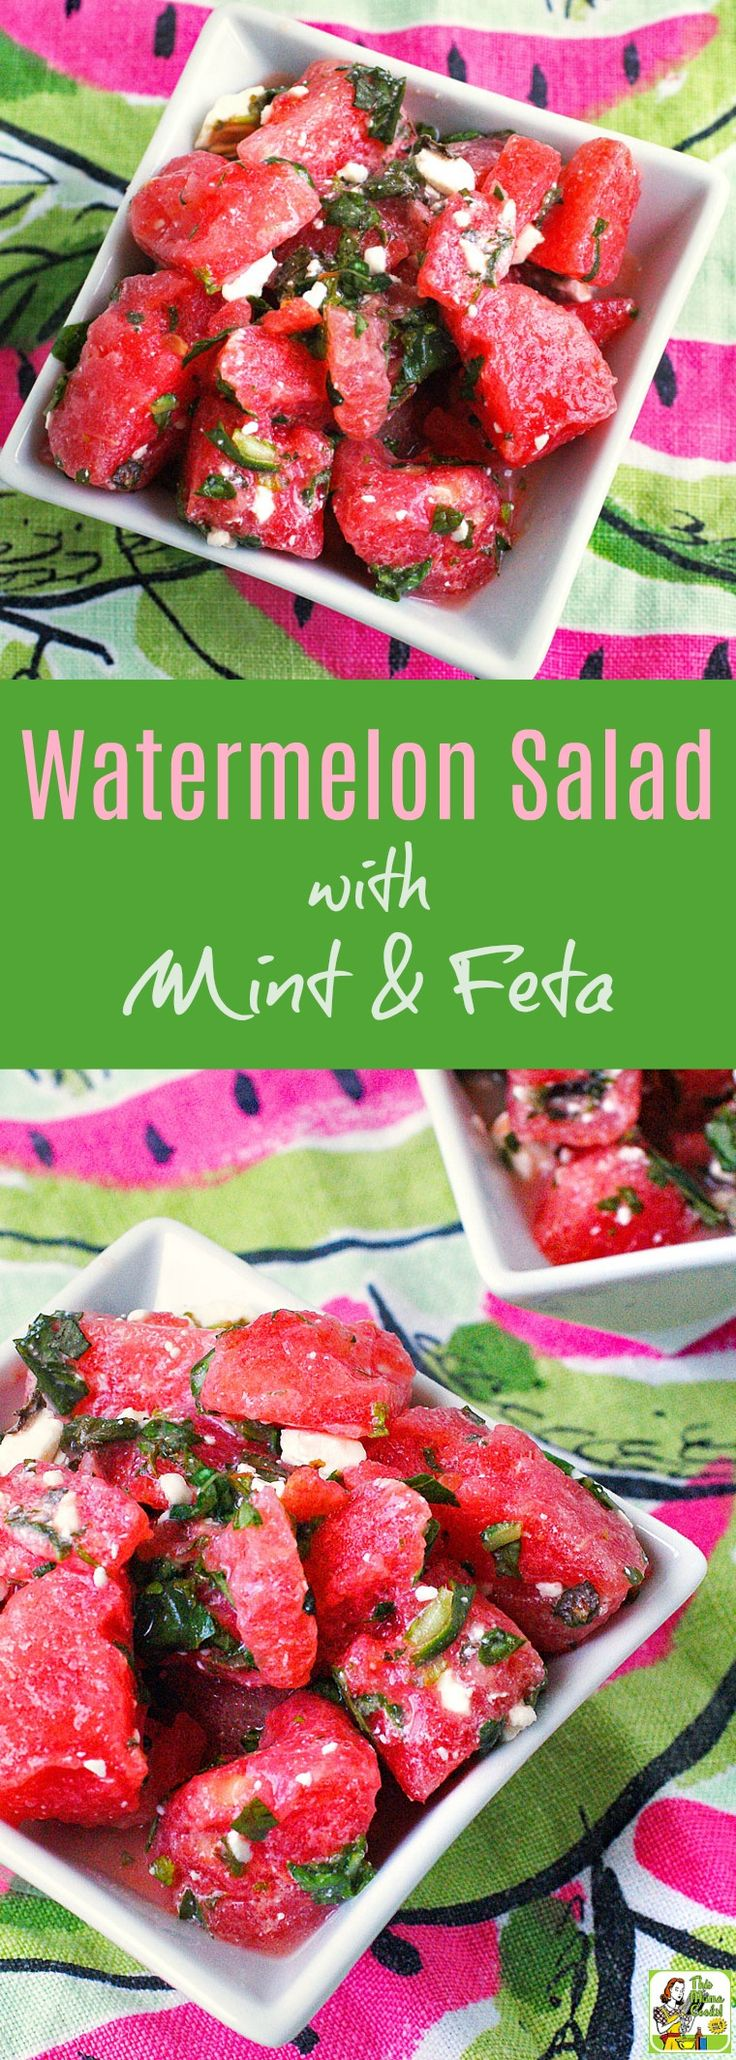 Watermelon Salad with Mint & Feta is the ideal fruit salad to serve at a cookout or to bring to a potluck party. Click to get this easy, gluten free watermelon salad recipe.